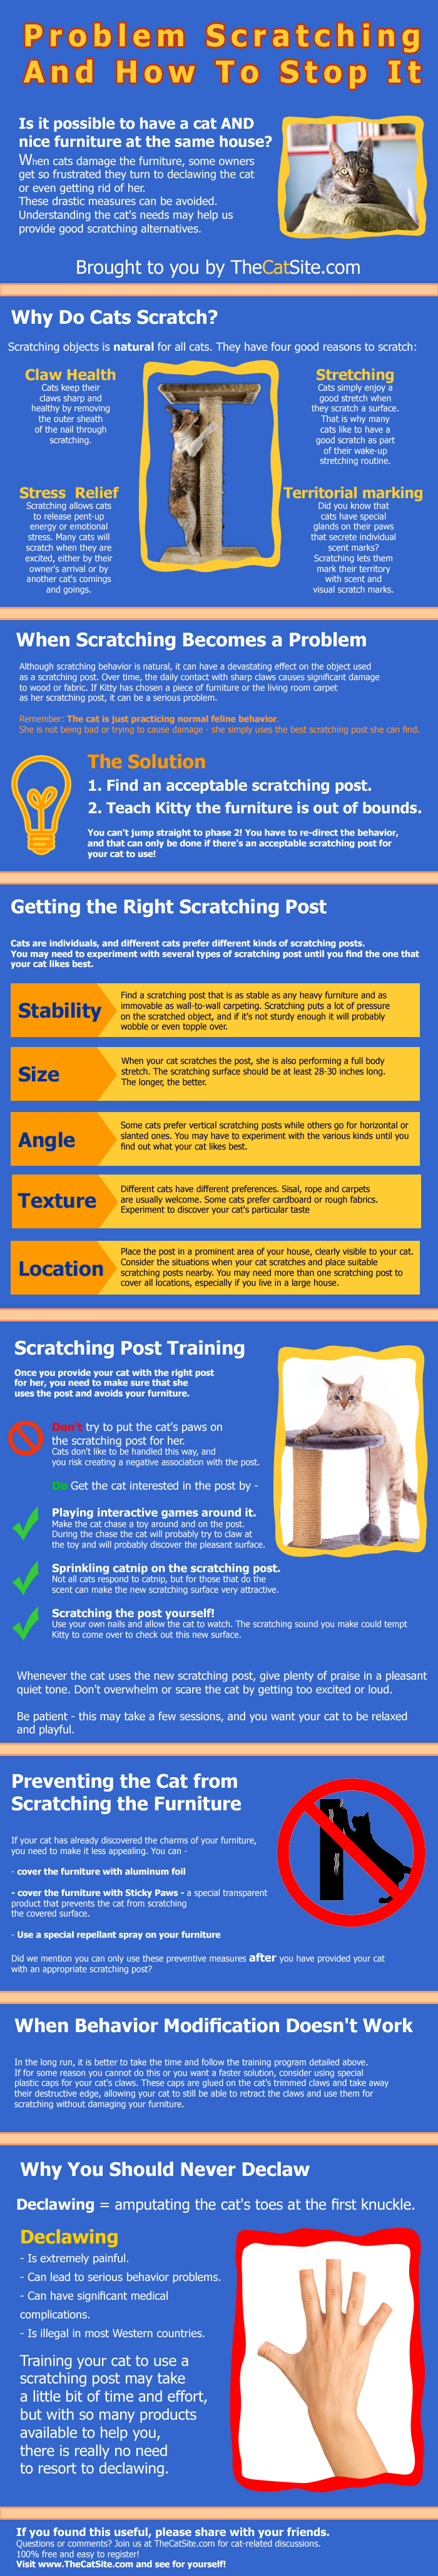 Pros And Cons Of Cats pros and cons of declawing cats | hrfnd